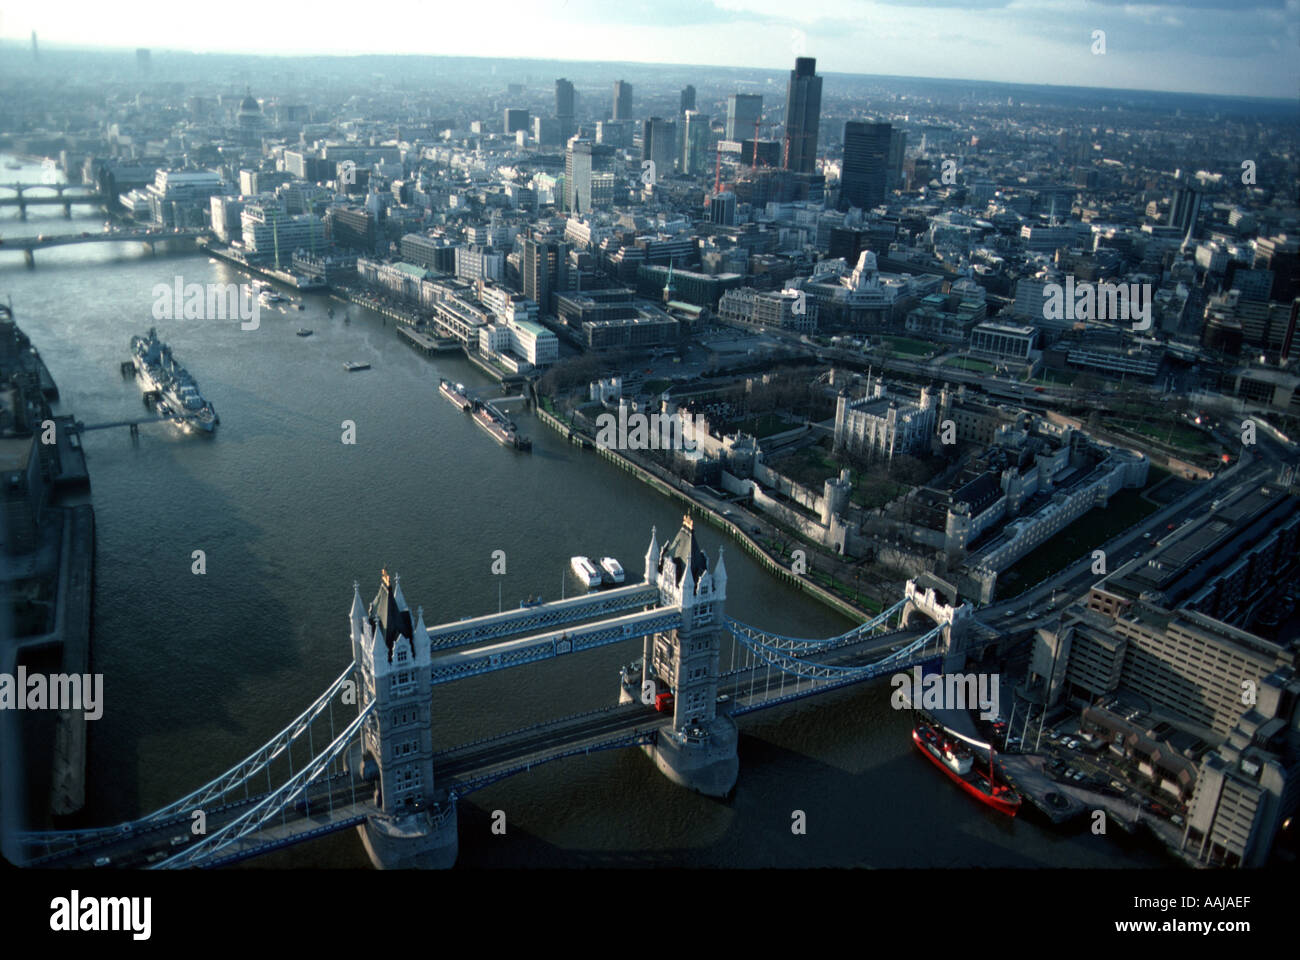 Aerial view of the Thames and Tower Bridge Stock Photo